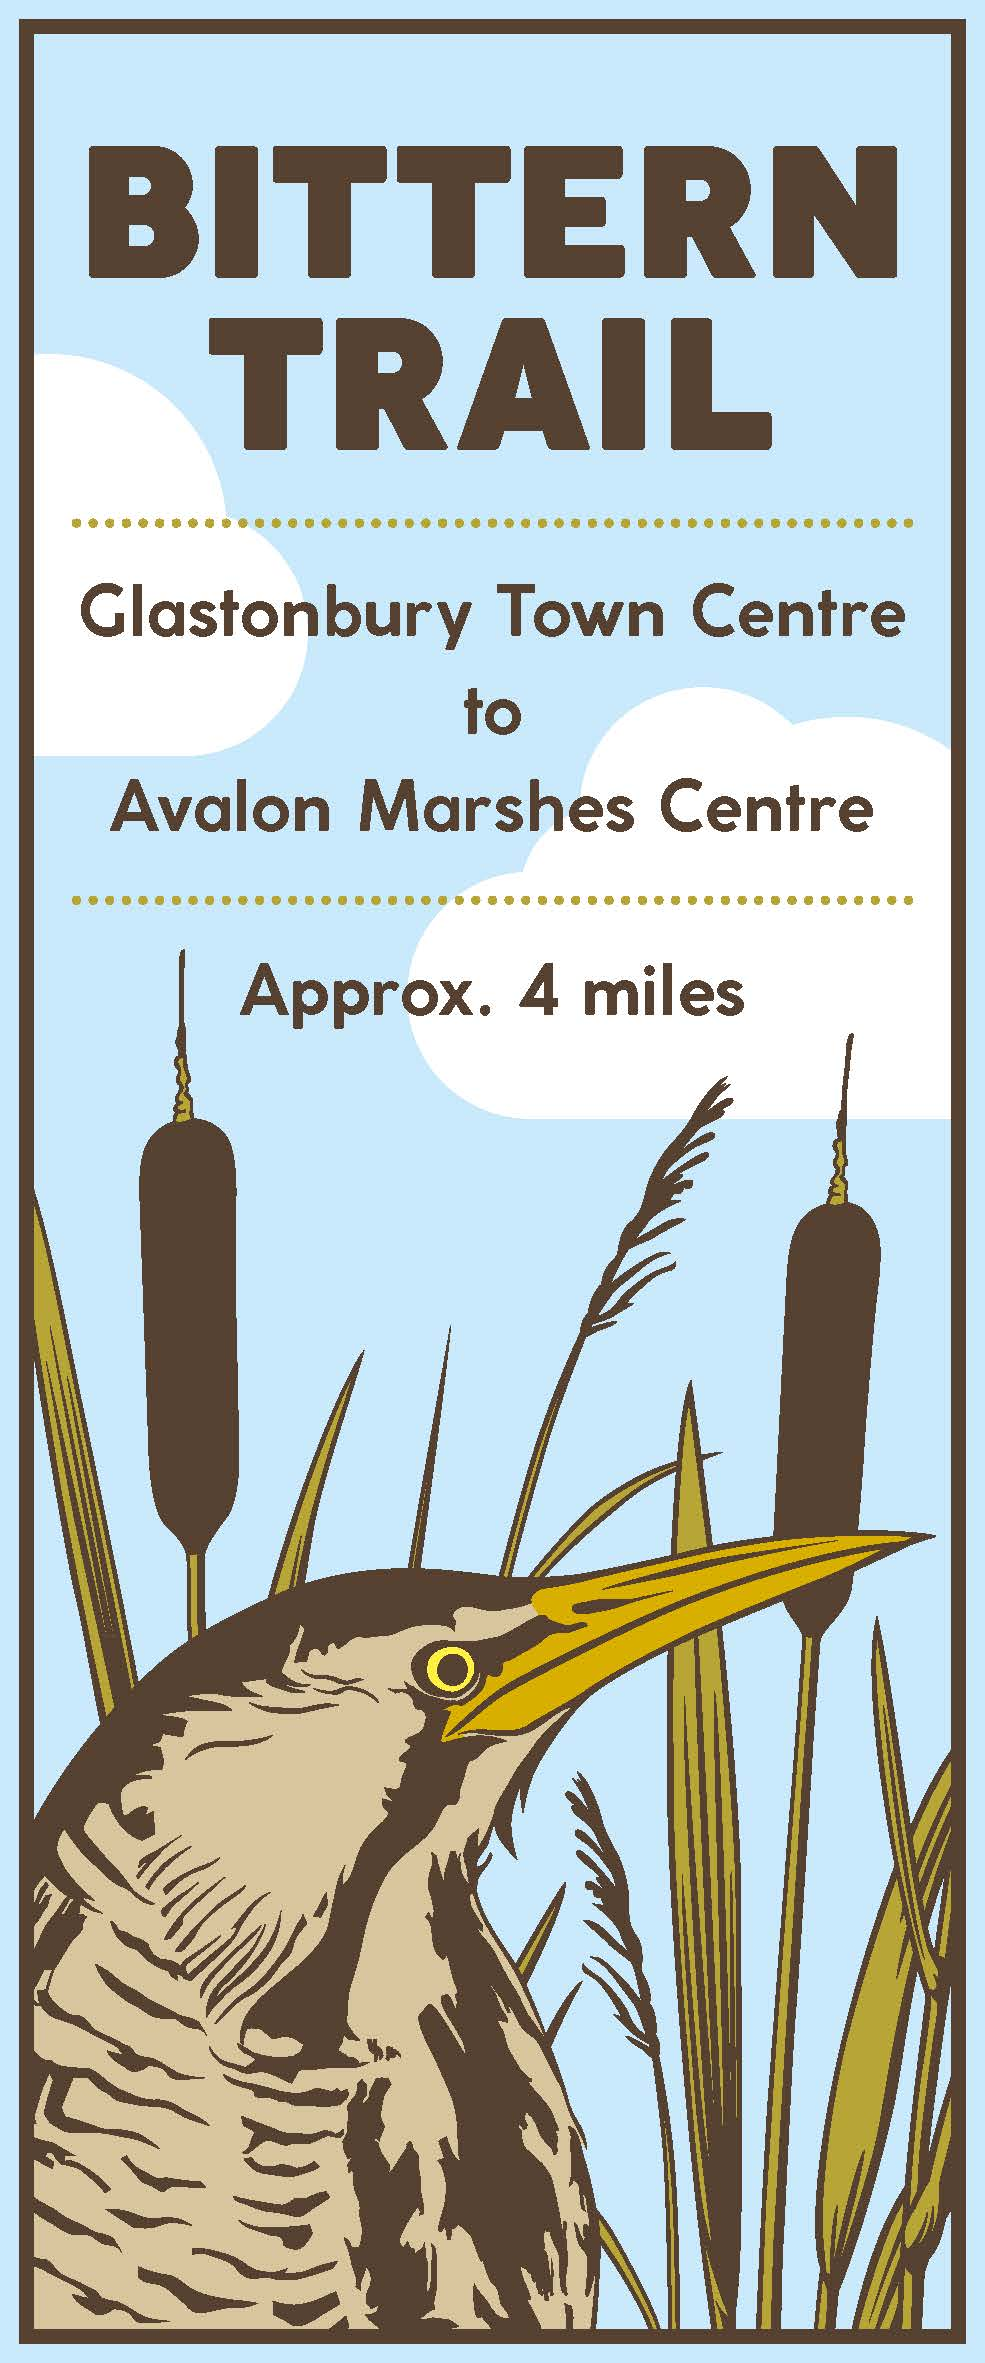 Bittern Trail Icon